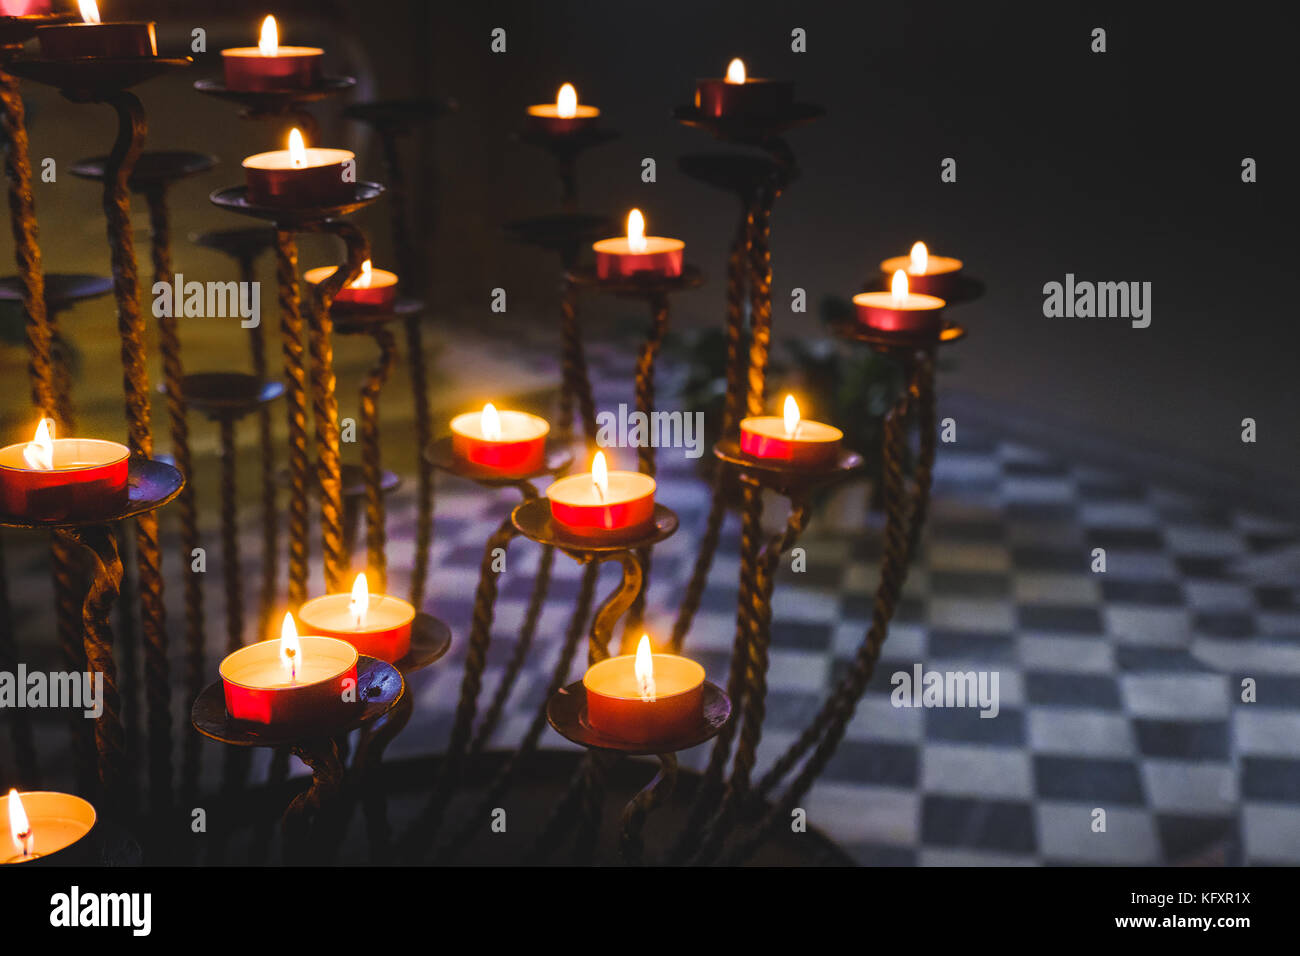 little candles candlestick dark background - Stock Image